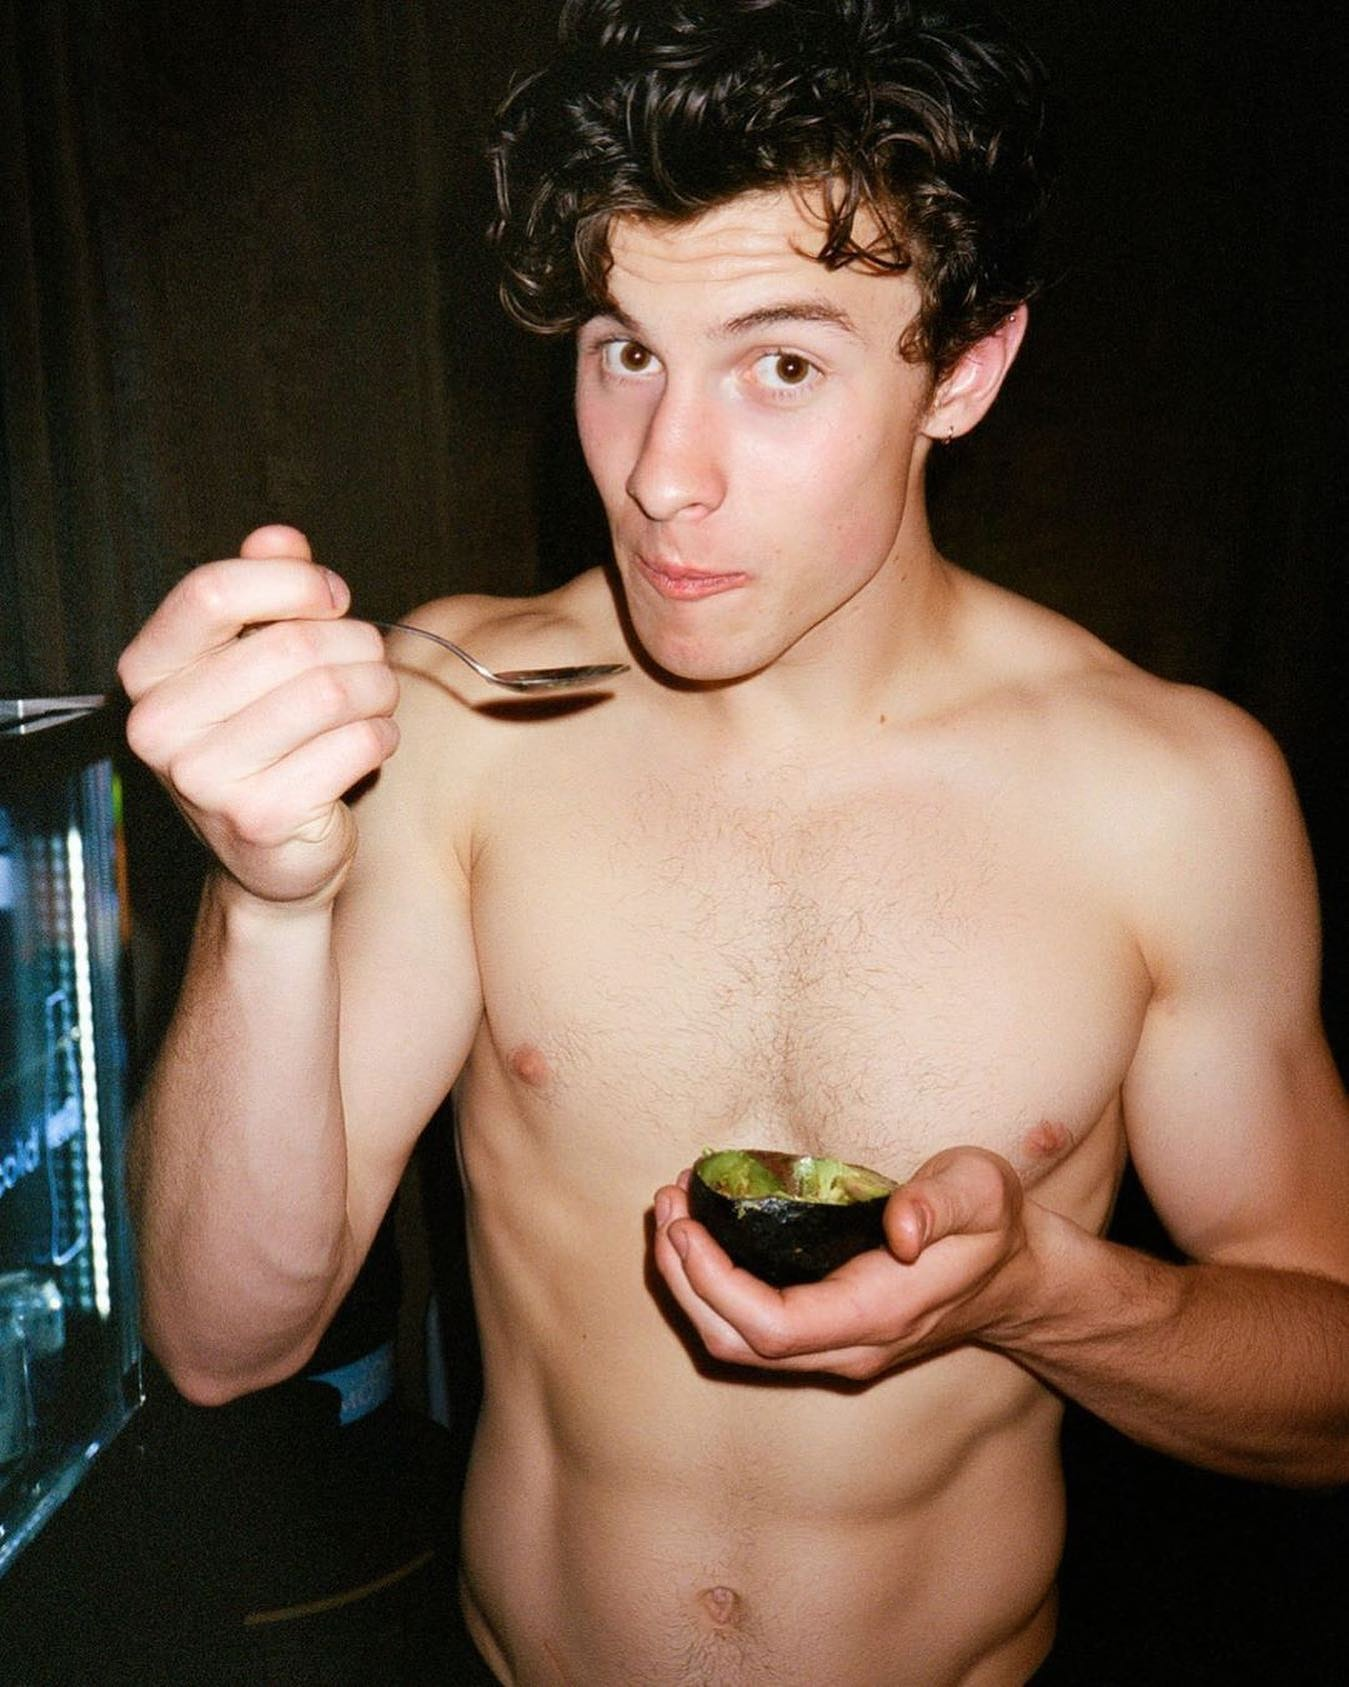 #shawnmendes #shirtless #abs #malecelebs